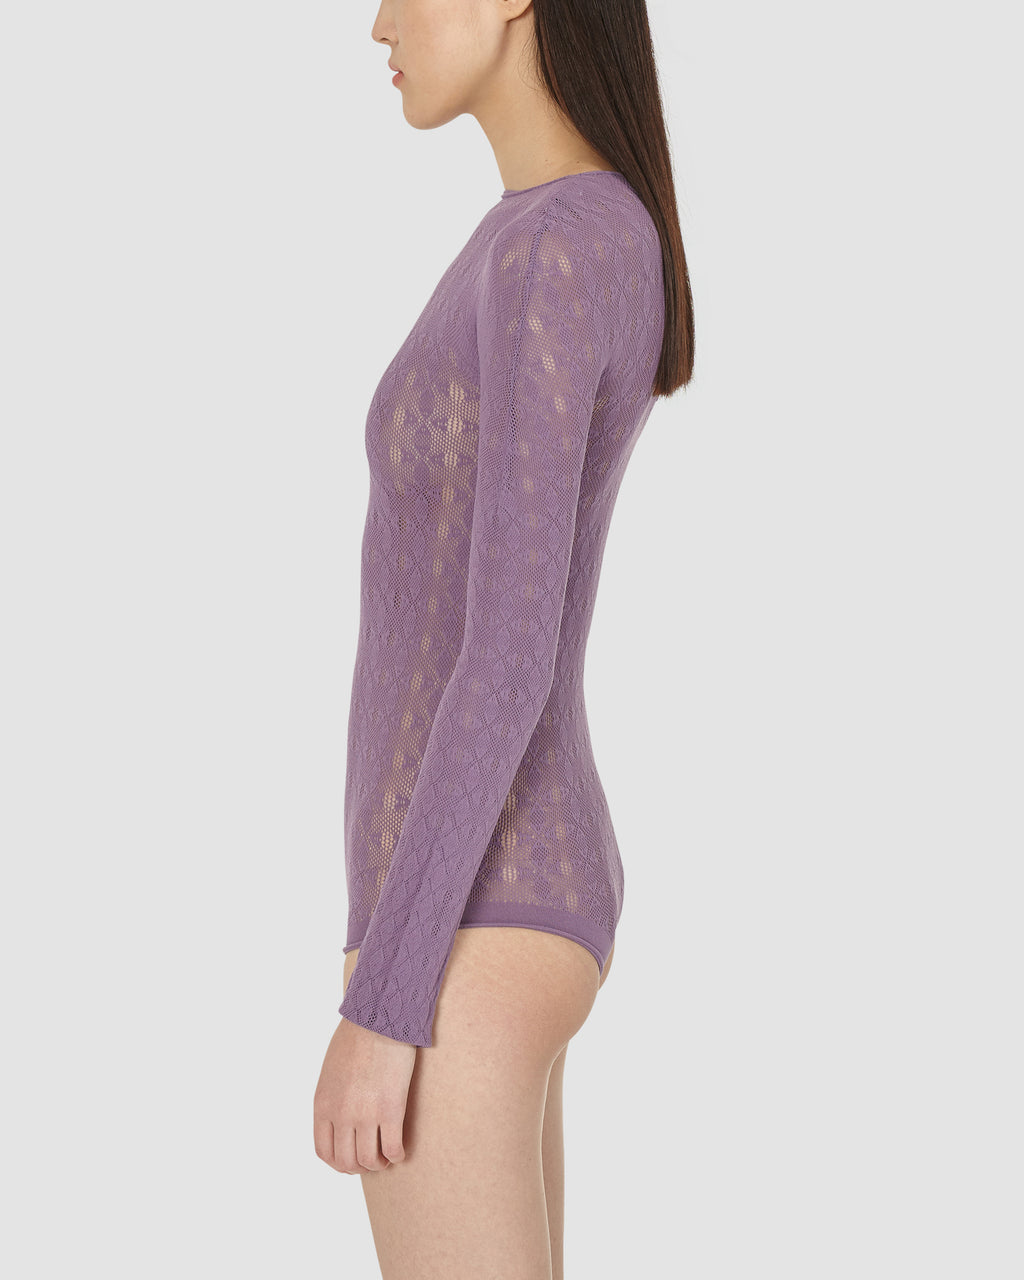 """A"" KNIT BODYSUIT"